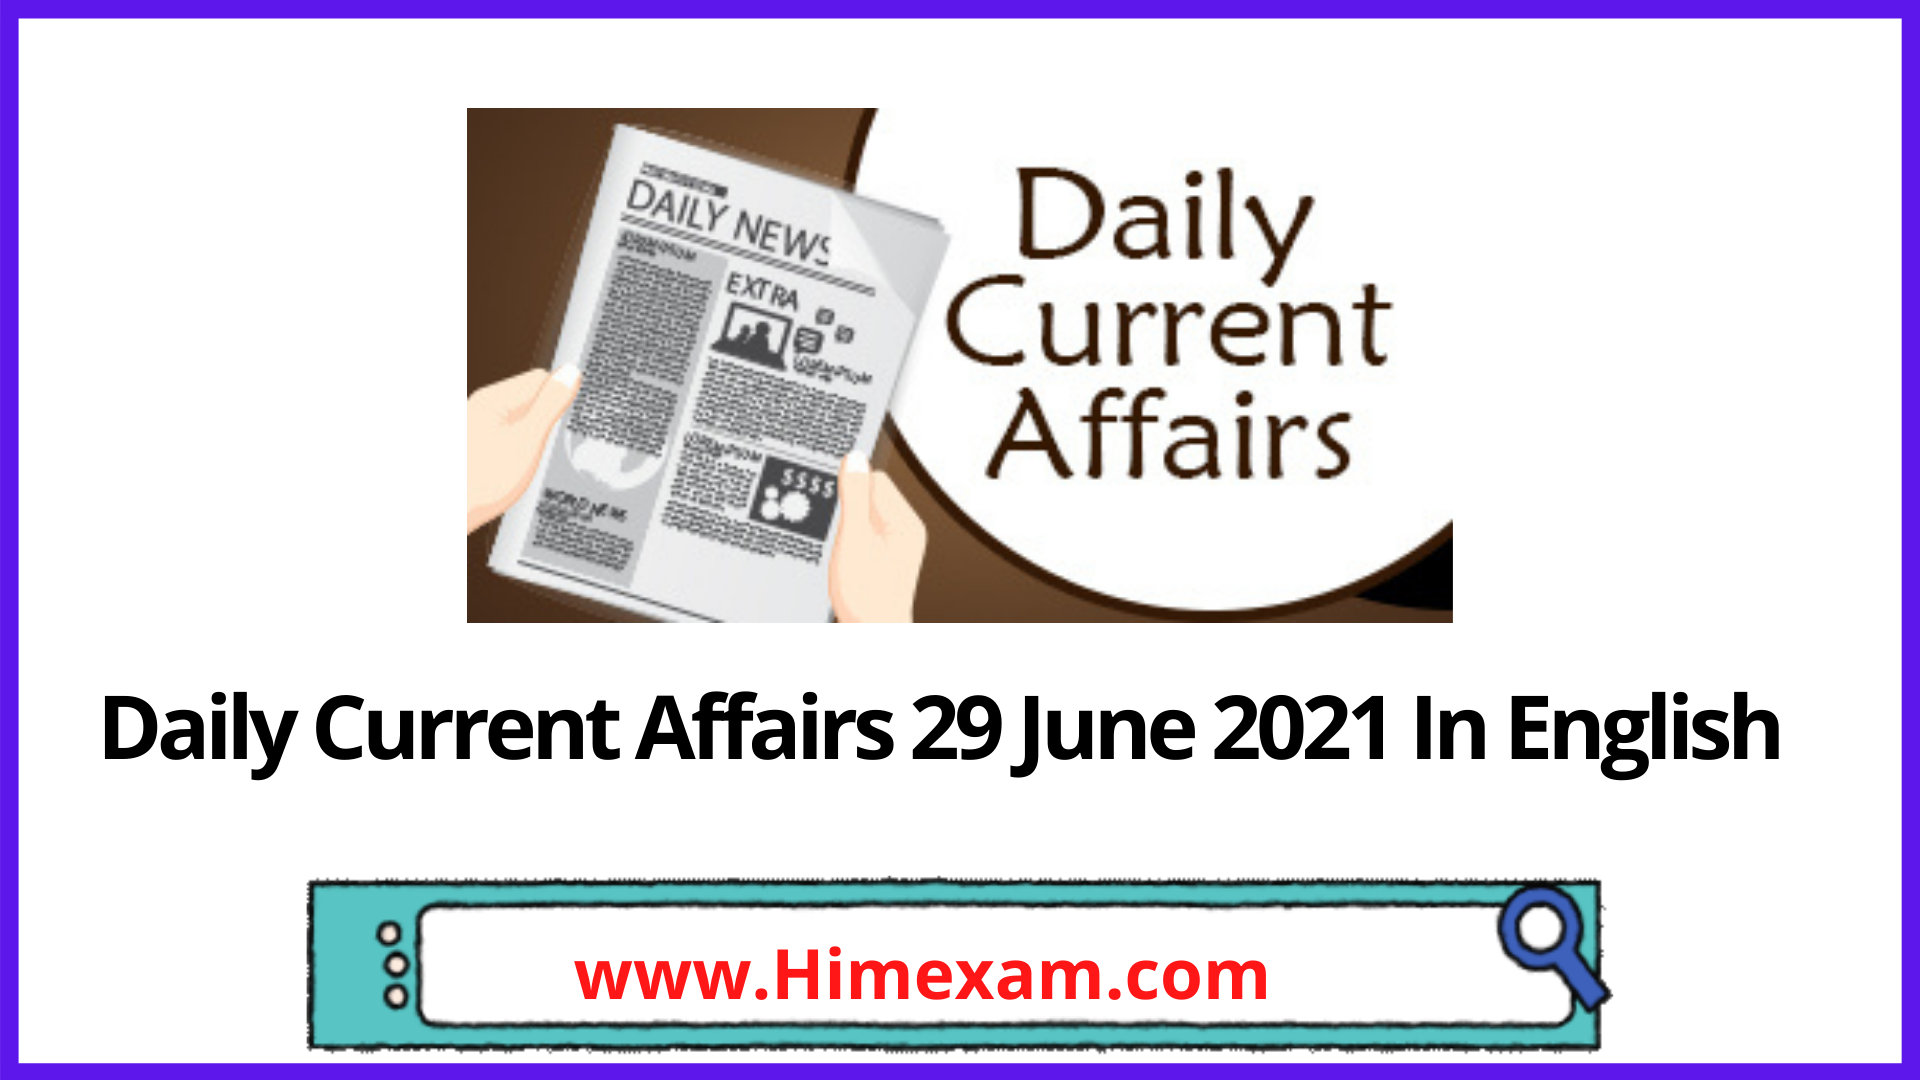 Daily Current Affairs 29 June 2021 In English